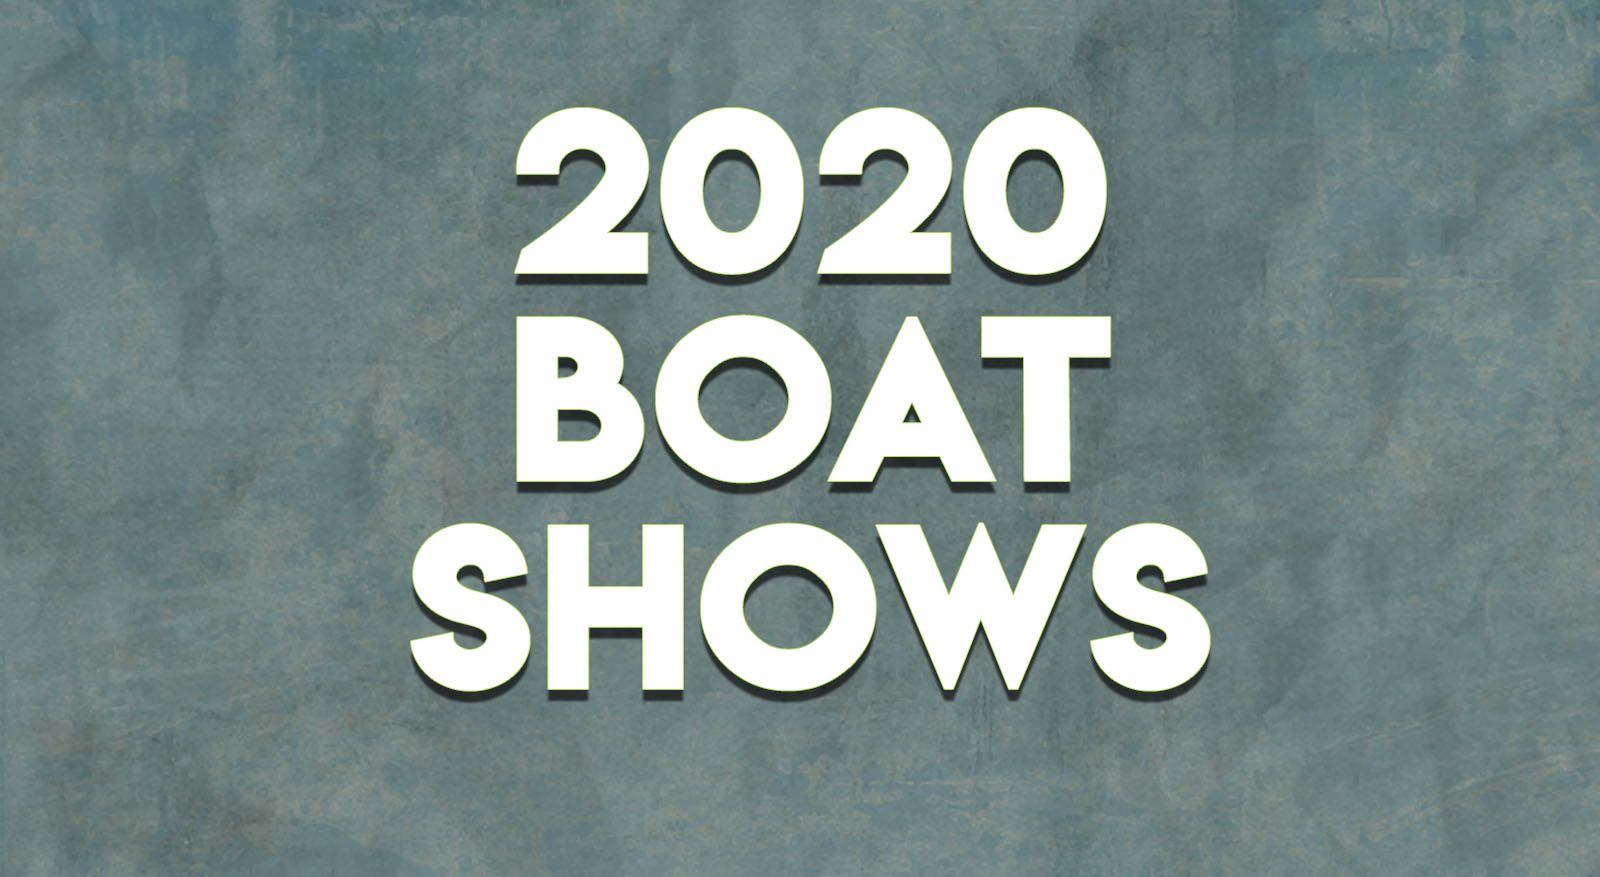 2020 Boat Shows